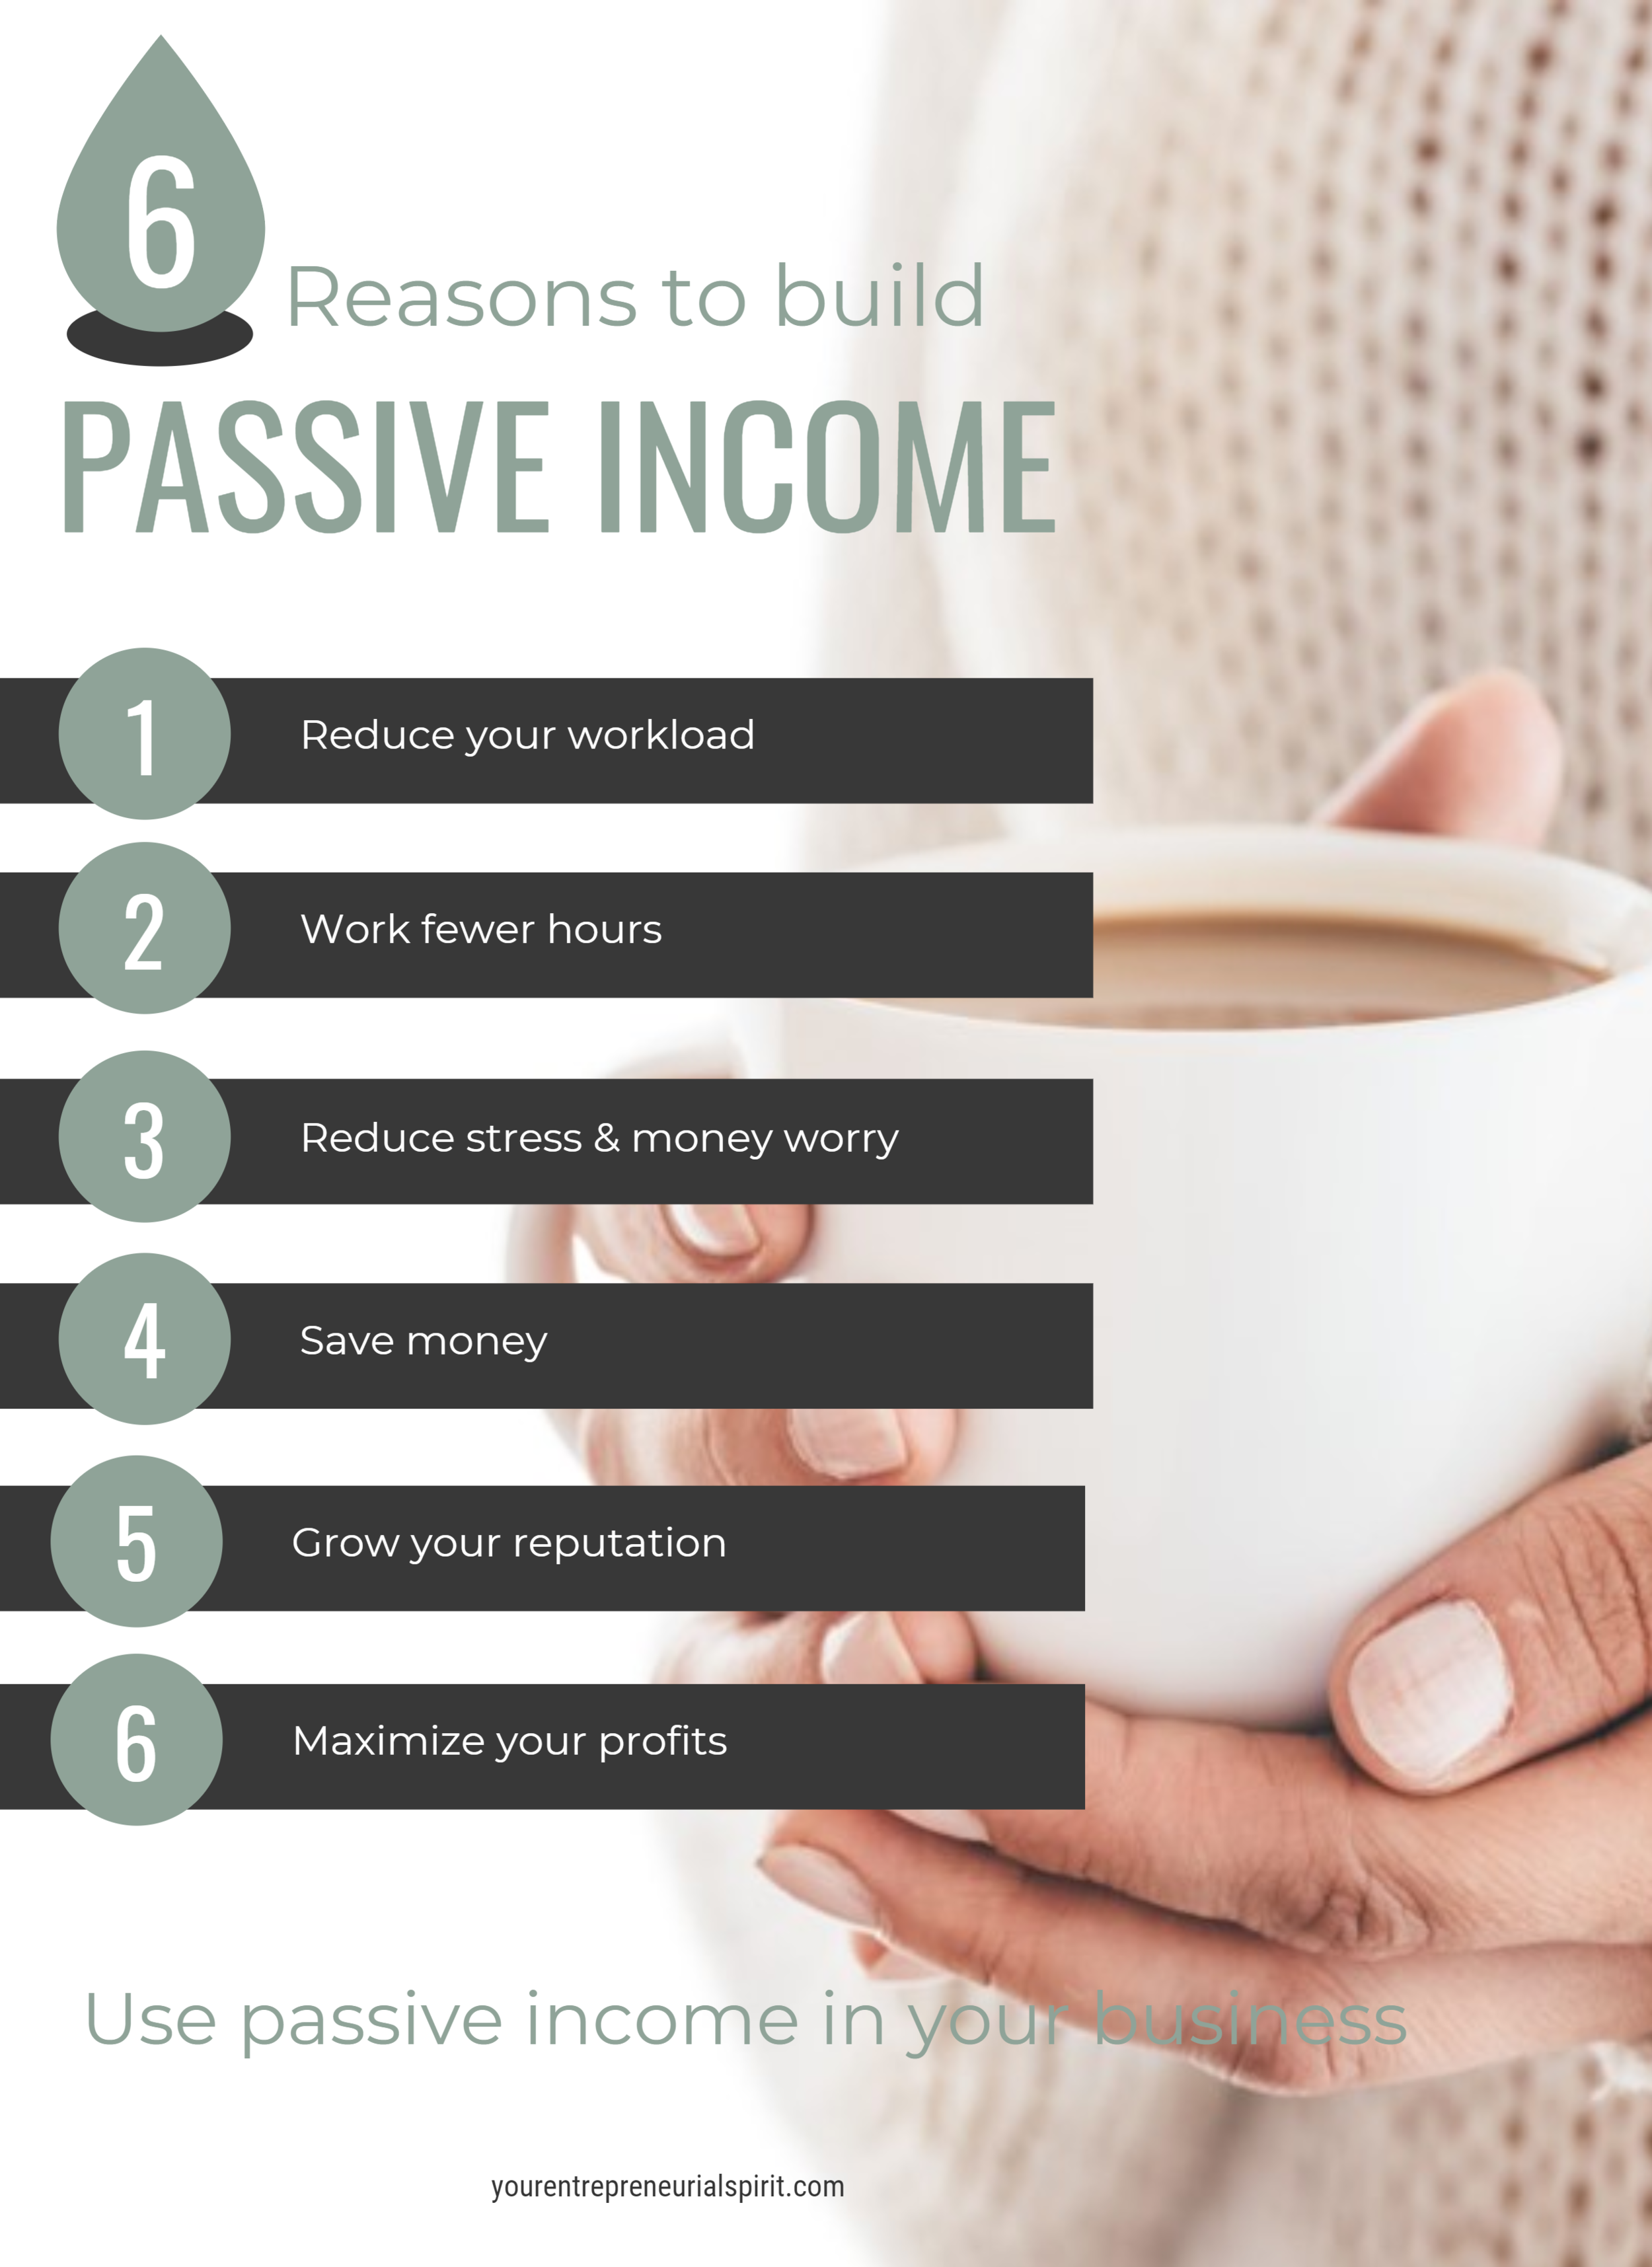 6 Reasons to build passive income - infographic